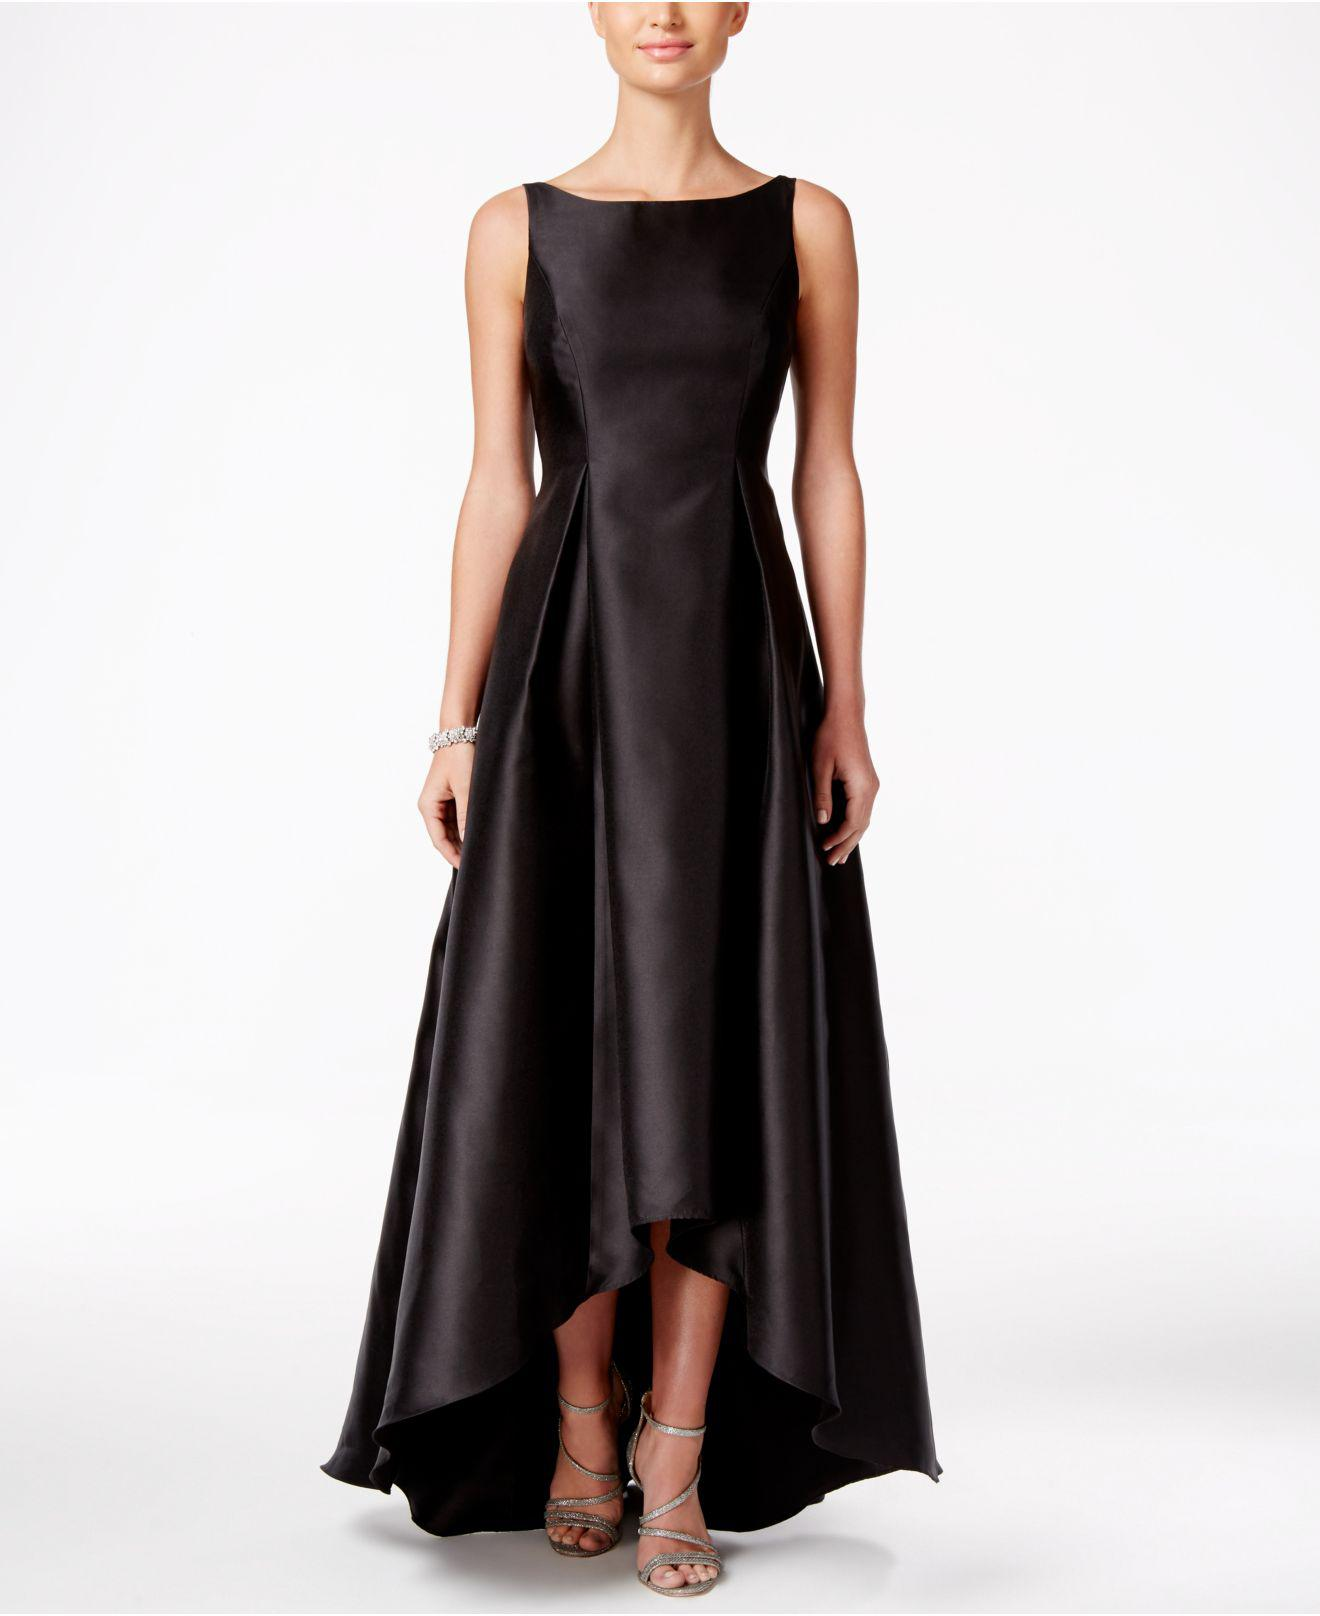 Lyst - Adrianna Papell High-low Ball Gown in Black